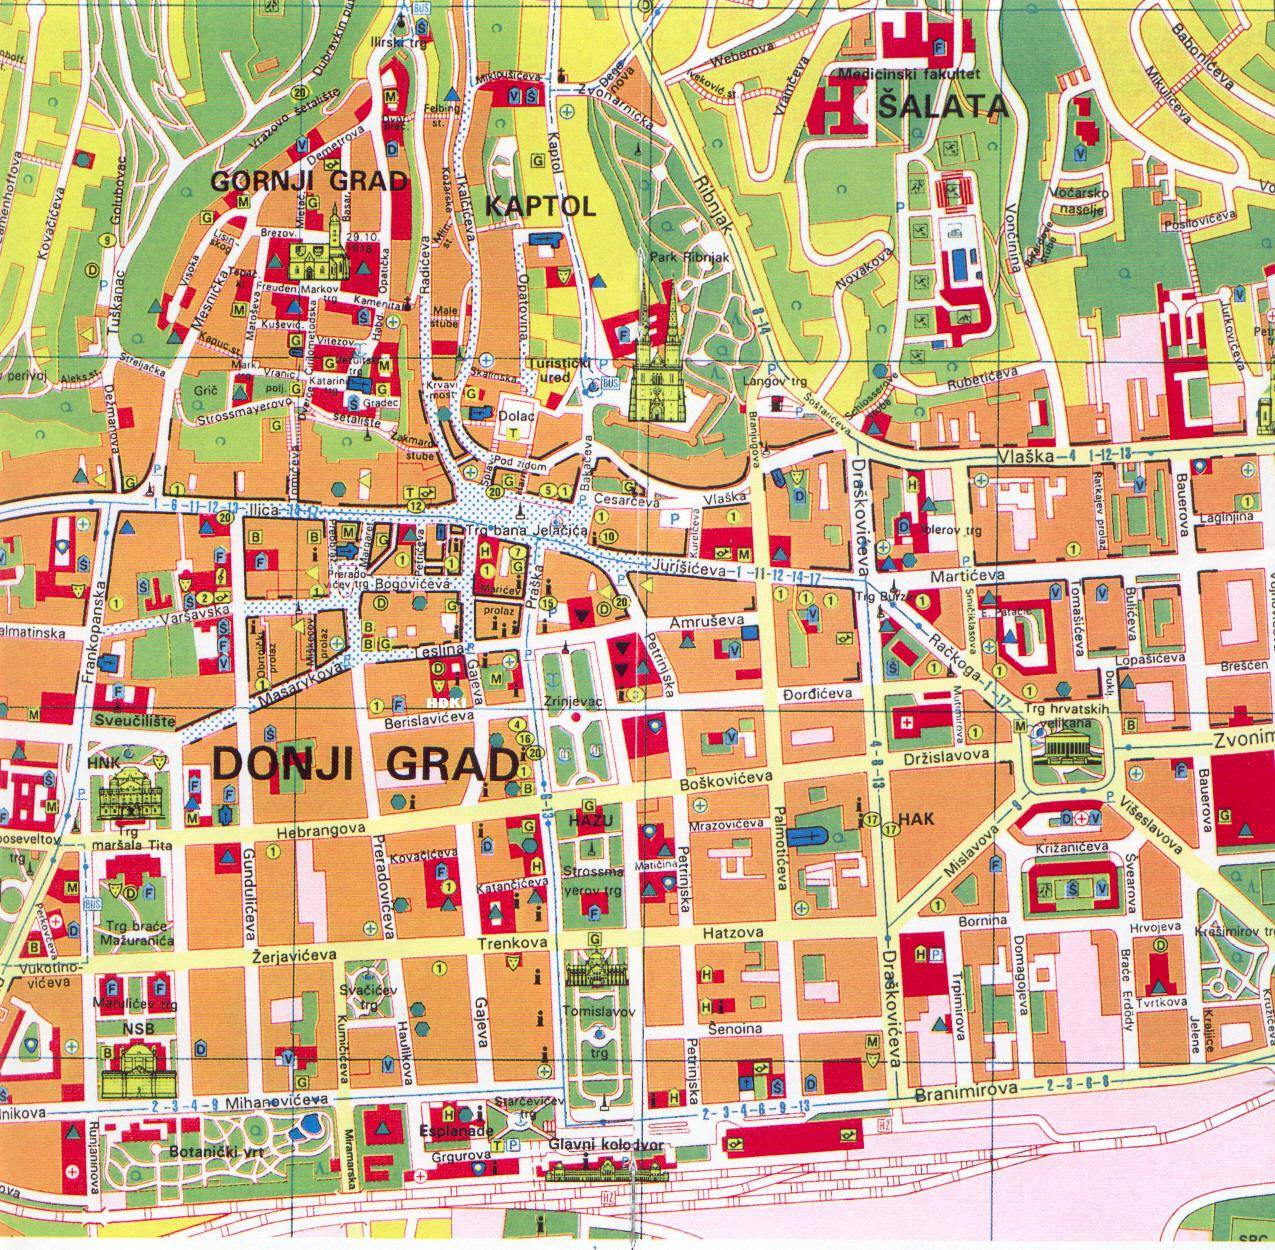 zagreb mapa Large Zagreb Maps for Free Download and Print | High Resolution  zagreb mapa